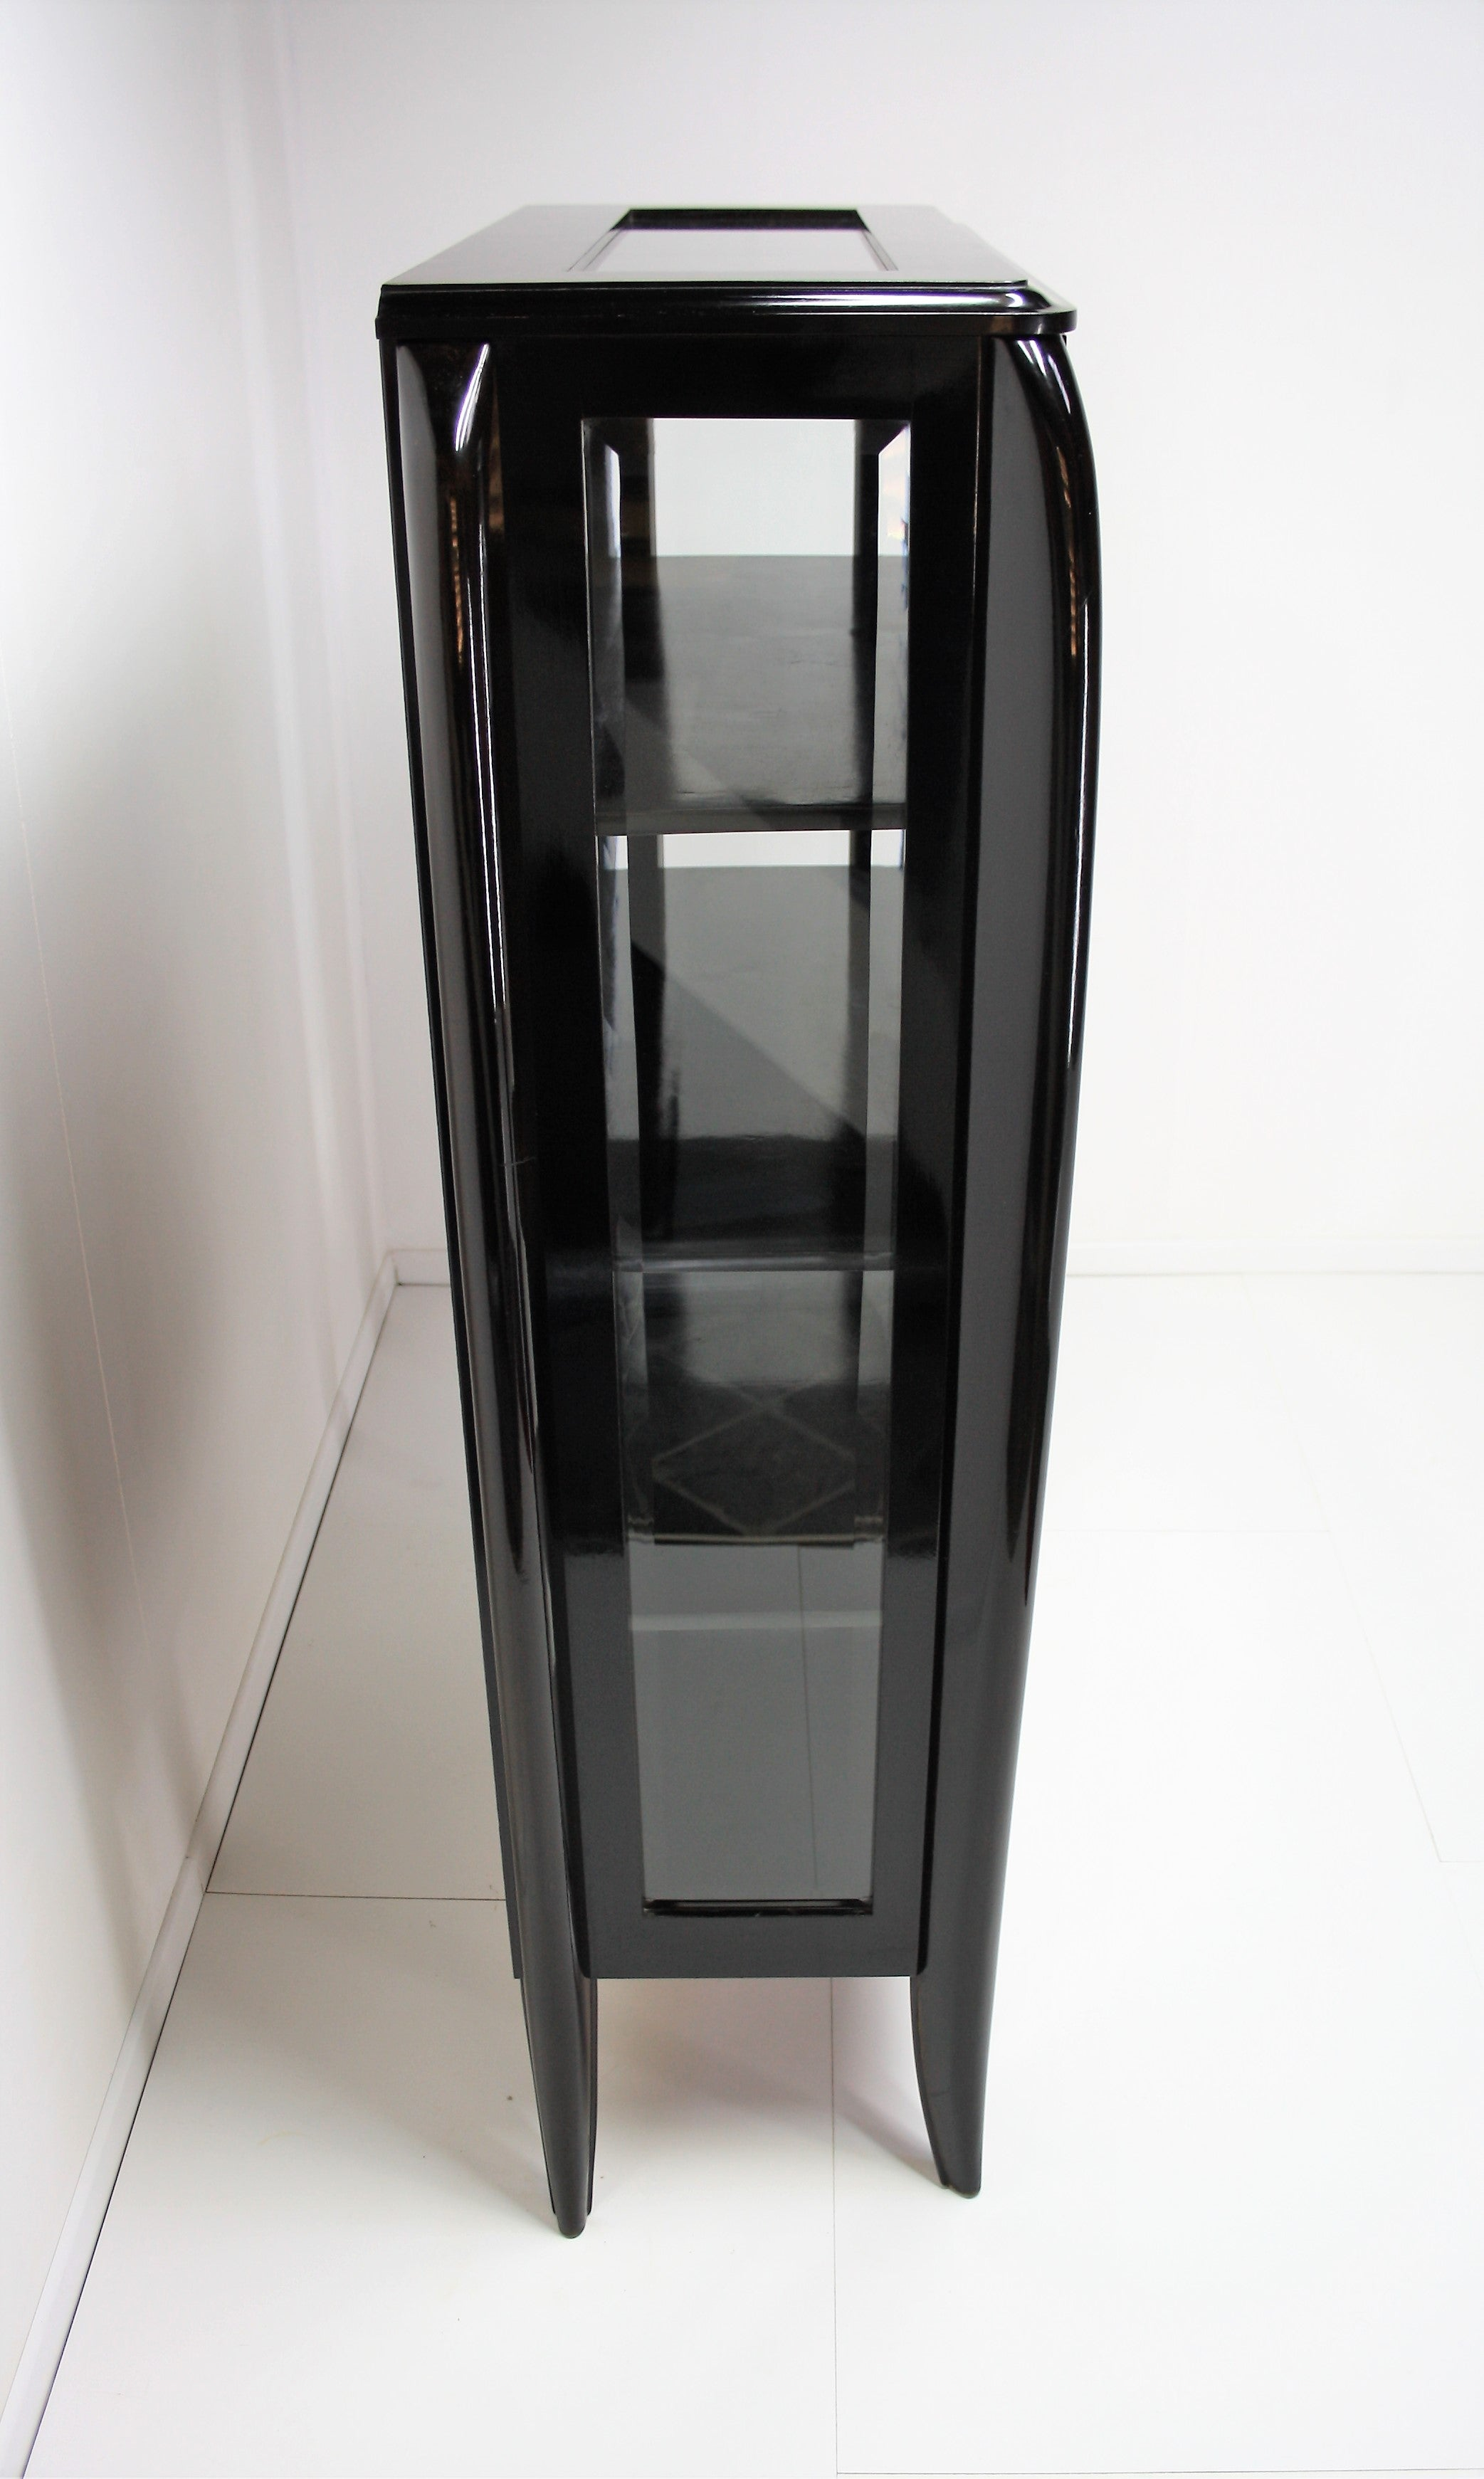 Elegant Art Deco Display Cabinet from Dominique 1930s For Sale at